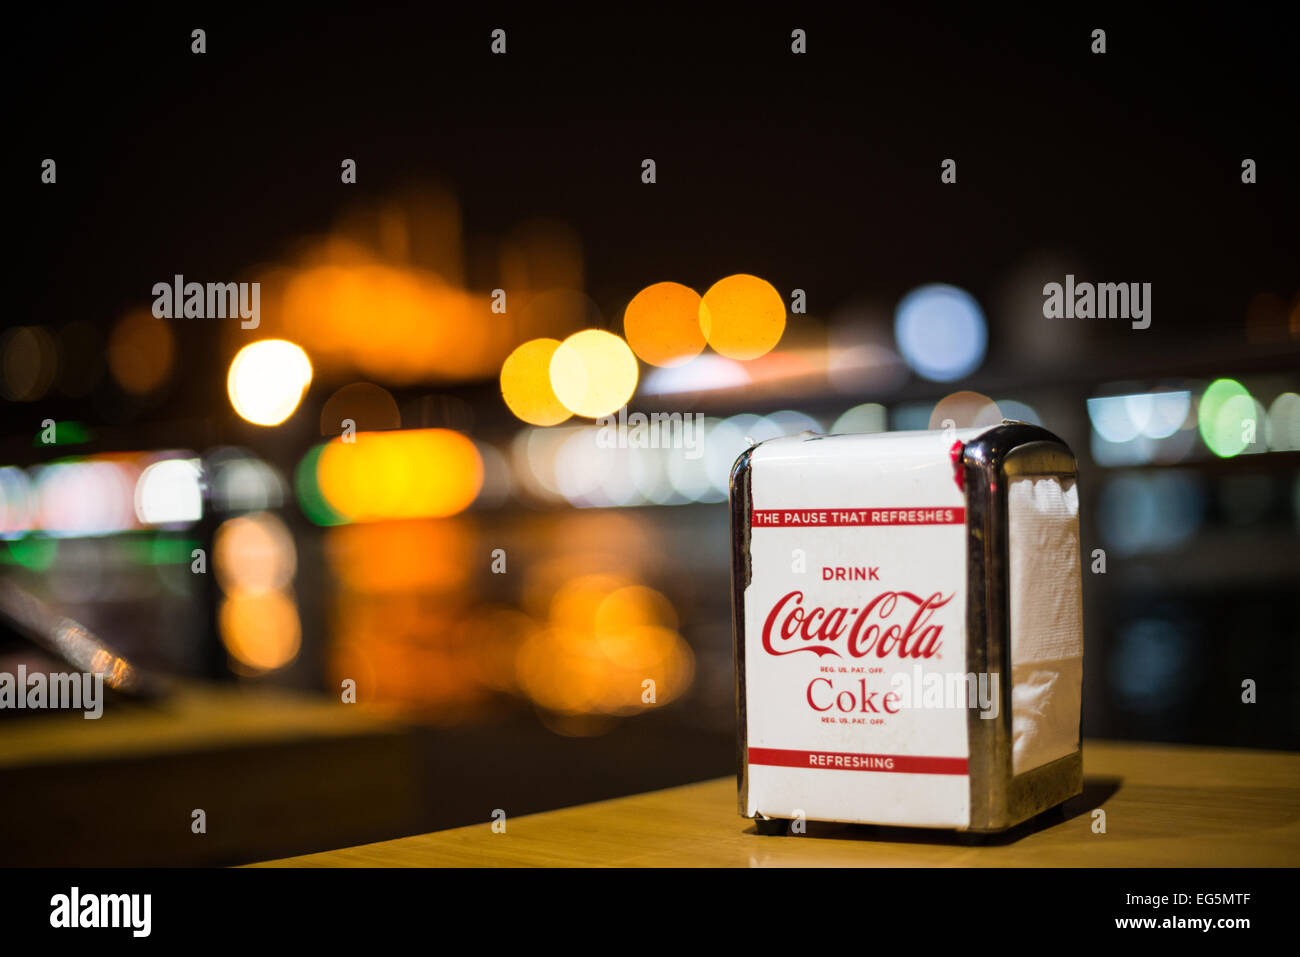 Branded Coca-Cola napkins in a dispenser on a table at a restaurant on the Galata Bridge in Istanbul, overlooking - Stock Image